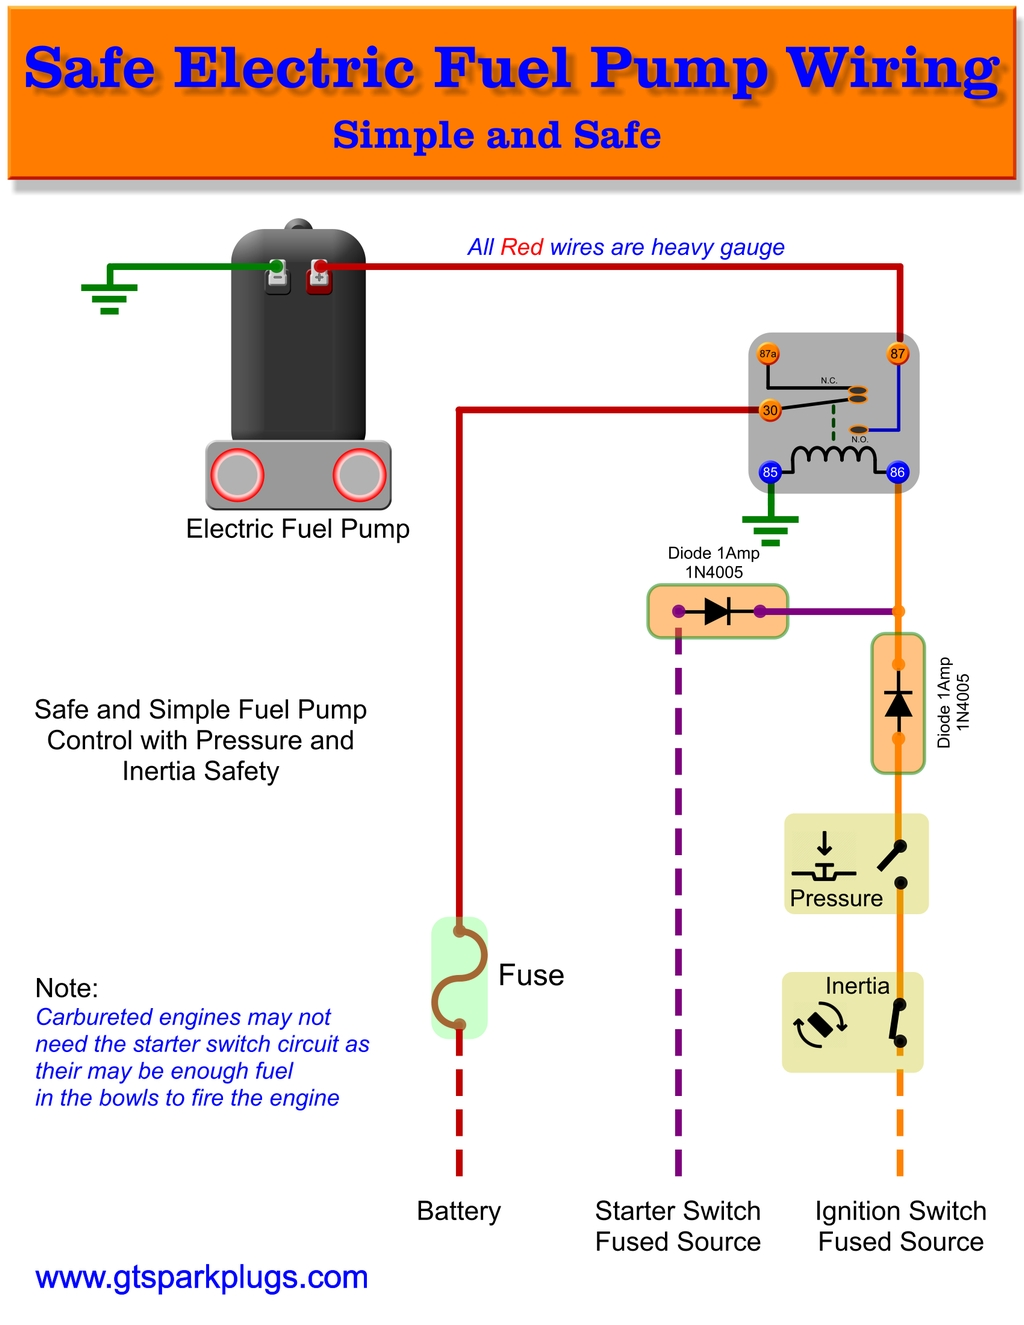 Electric Fuel Pump Wiring Diagram | GTSparkplugs